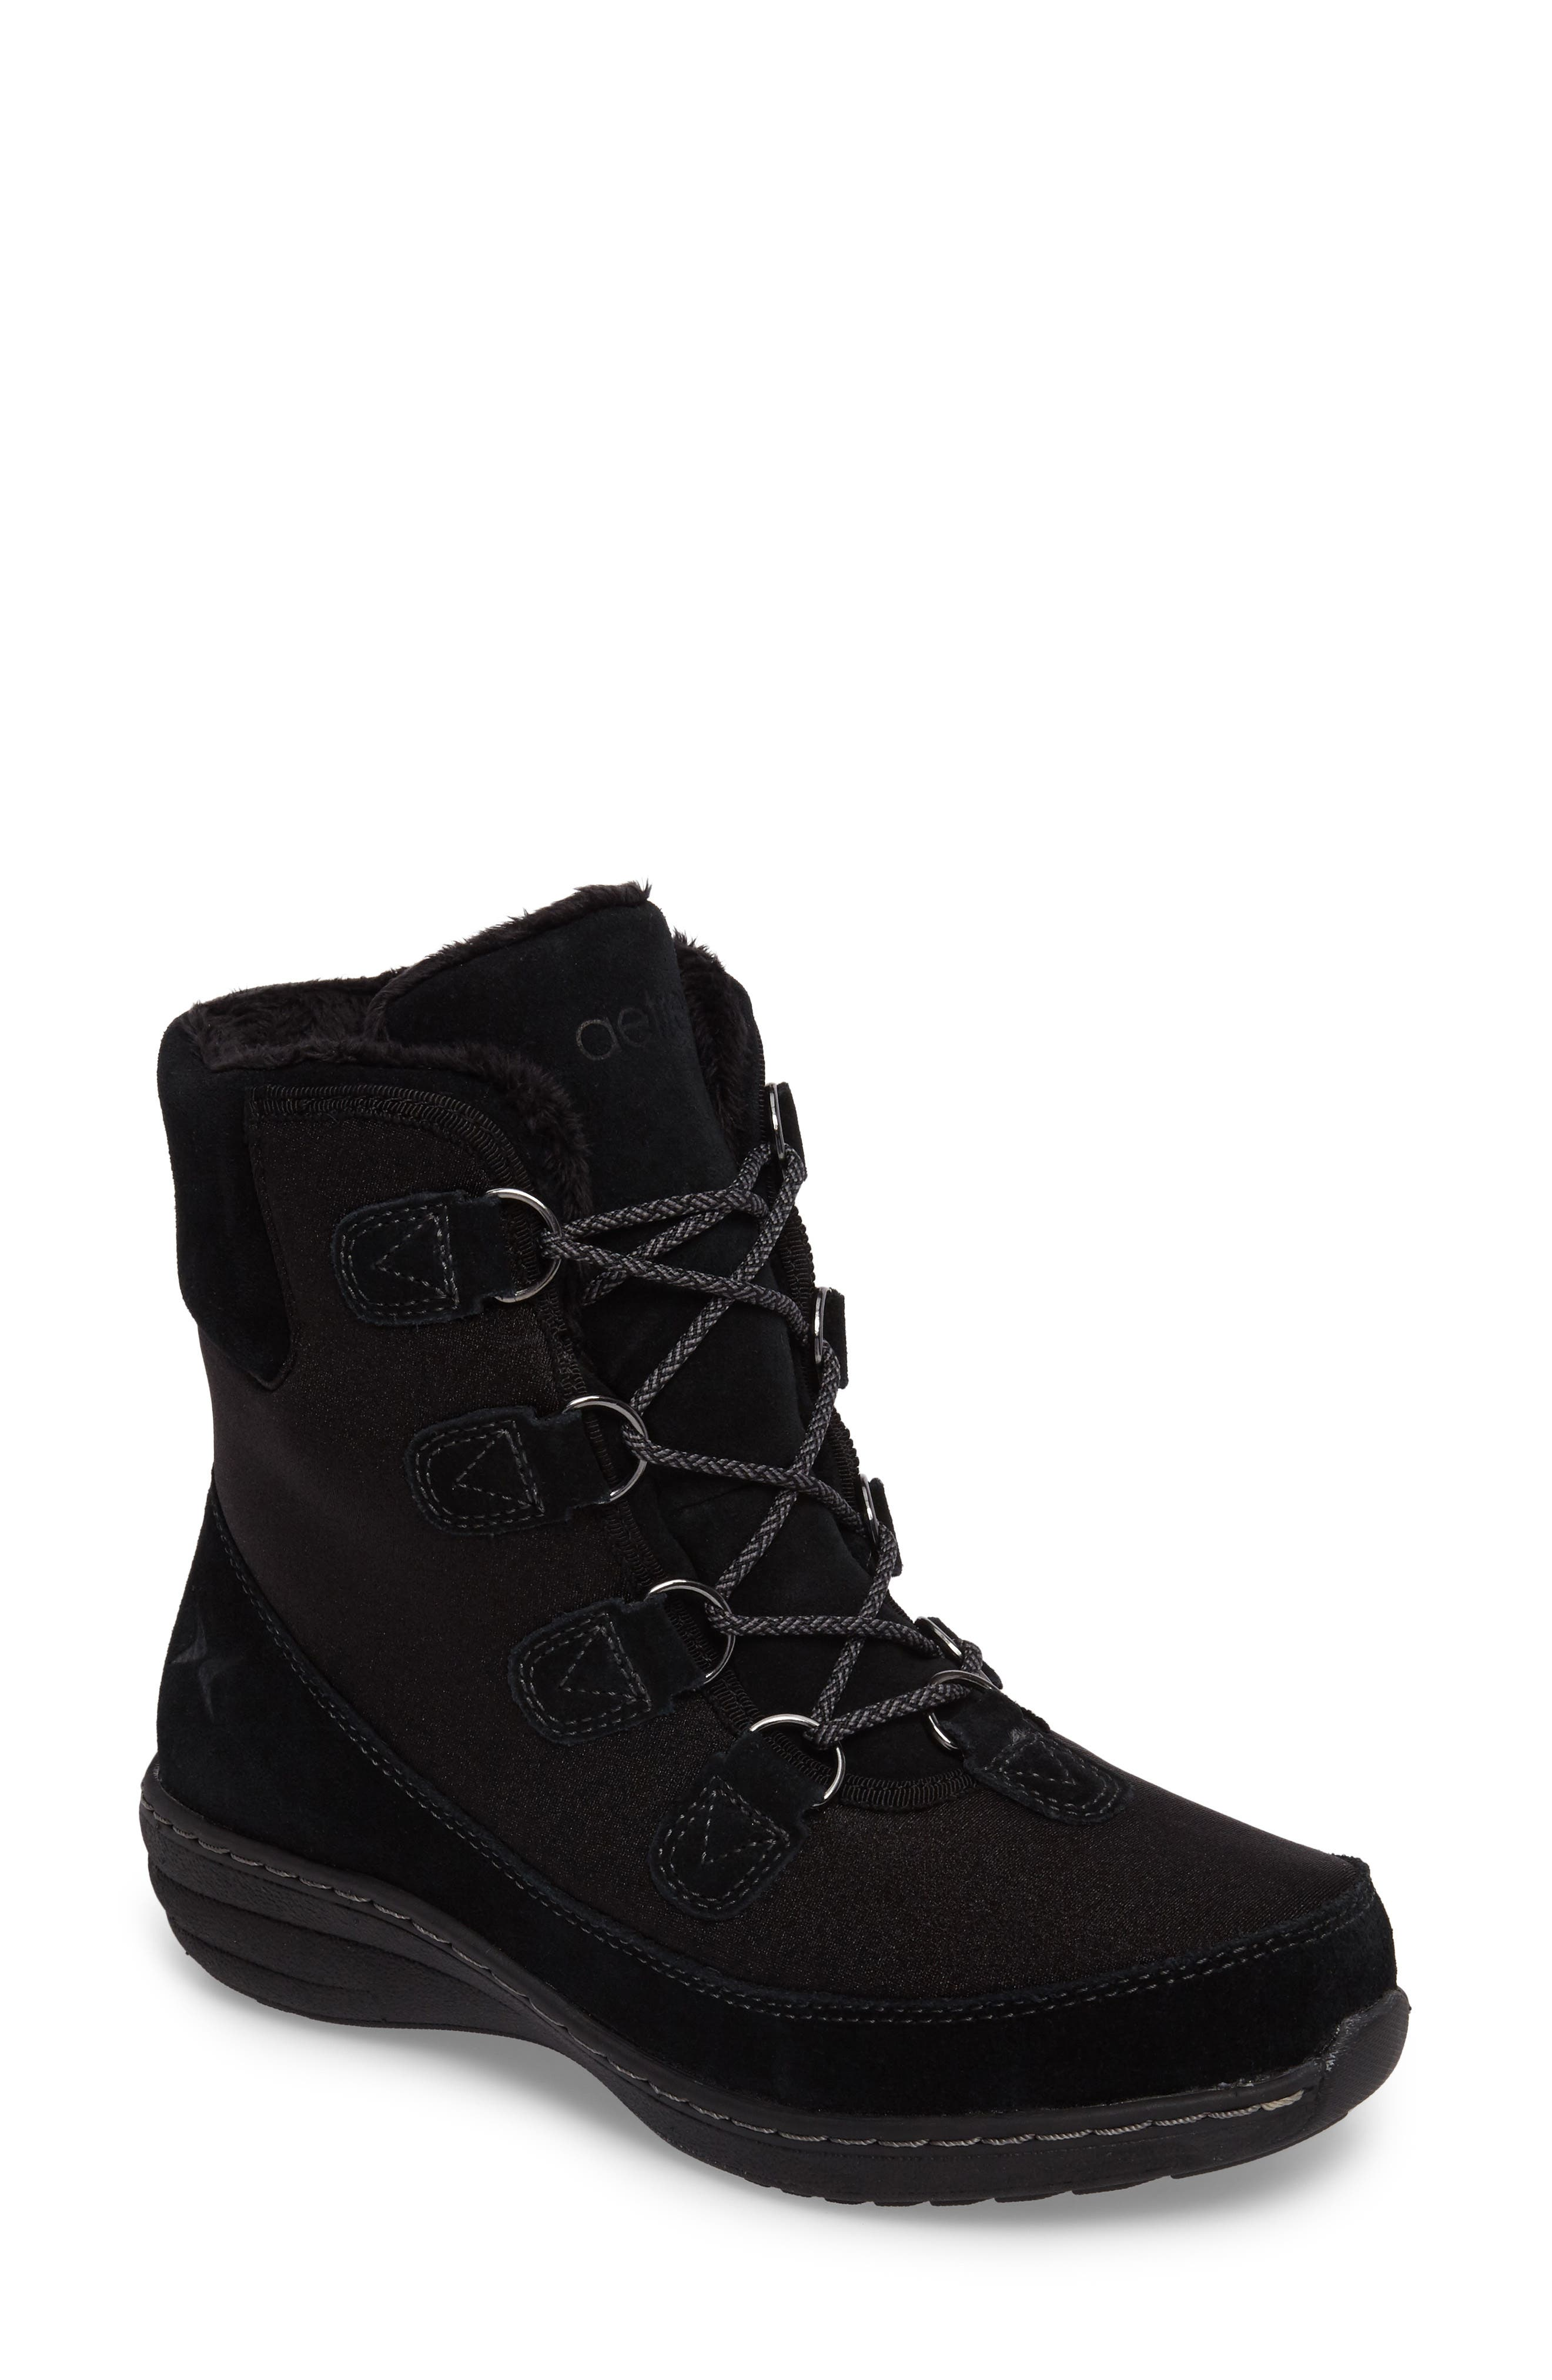 Berries Water Resistant Boot,                             Main thumbnail 1, color,                             Blackberry Suede